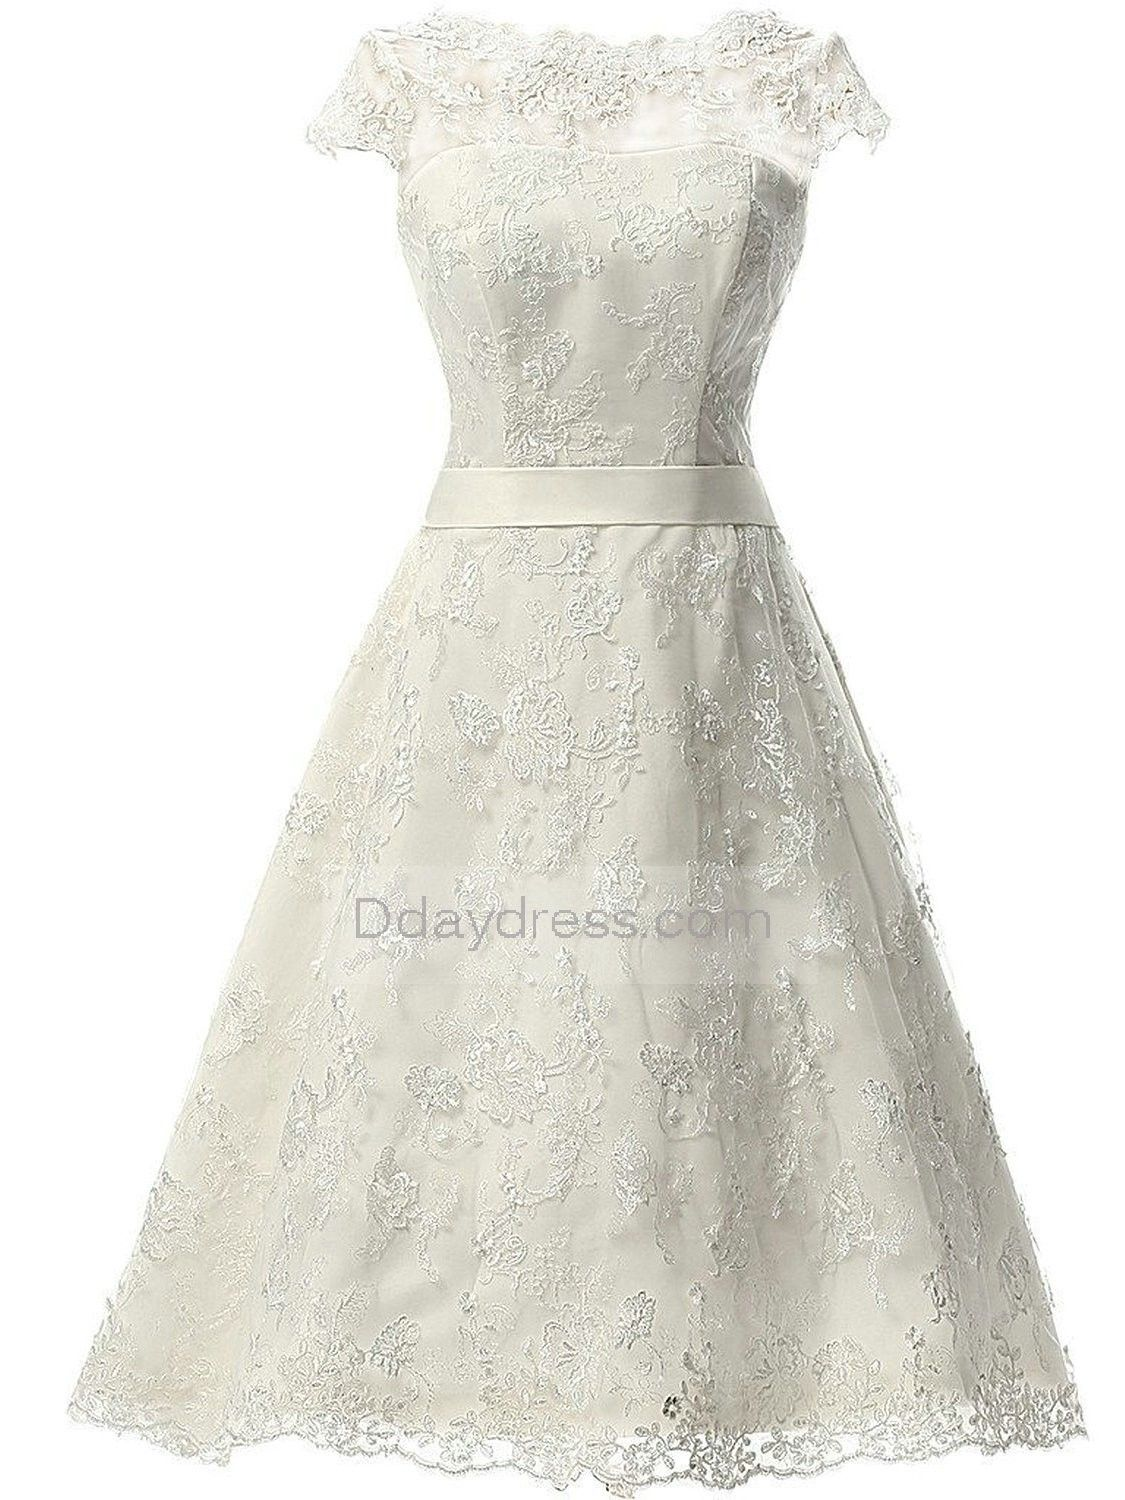 Short prom style wedding dresses  Women Vintage Lace Wedding Dress Short Bridal Gown with Sash